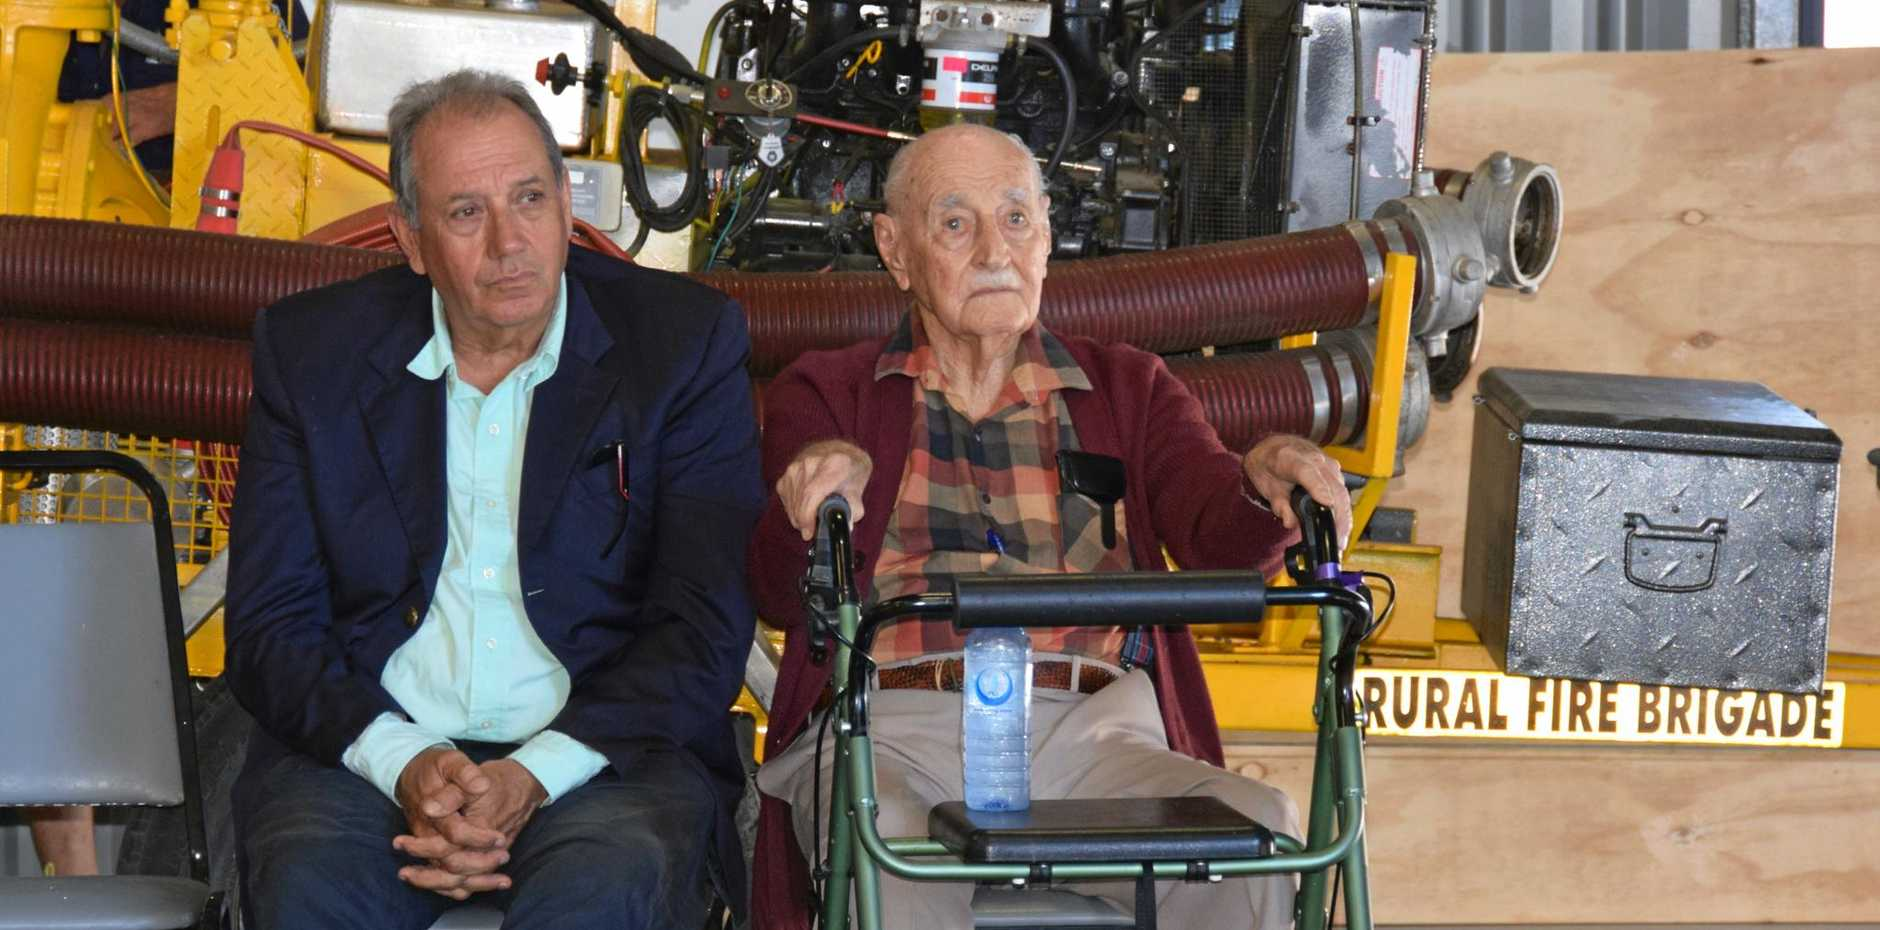 OLDEST MEMBER: 101-year-old Dave Daniels with his son.